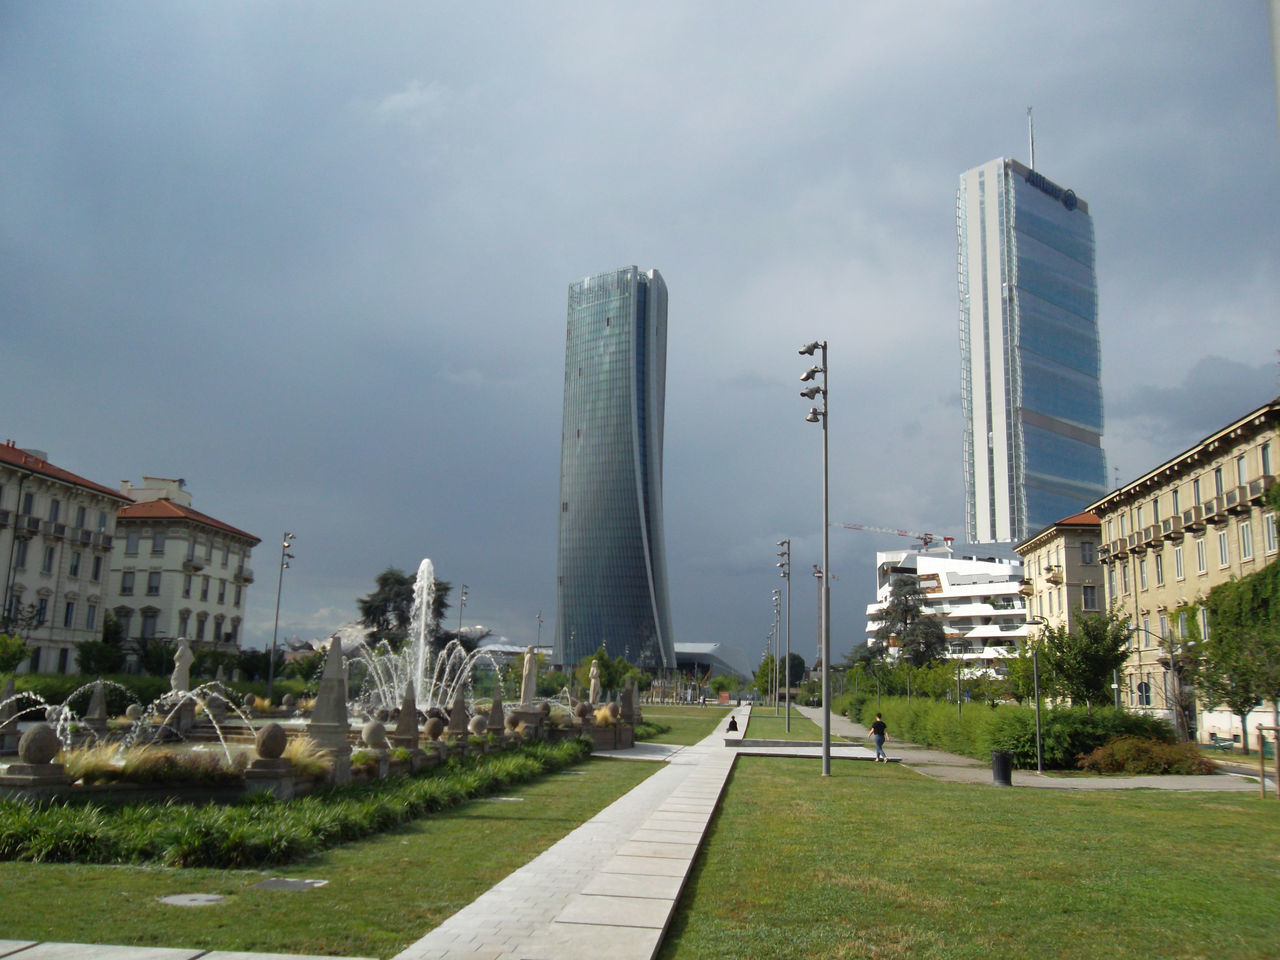 Citylife ... Arata Isozaki Architecture Building Exterior Built Structure City City Life Cloud - Sky Day Grass Growth Milano Citylife Modern Nature No People Outdoors Sky Skyscraper Travel Destinations Tree Zaha Hadid